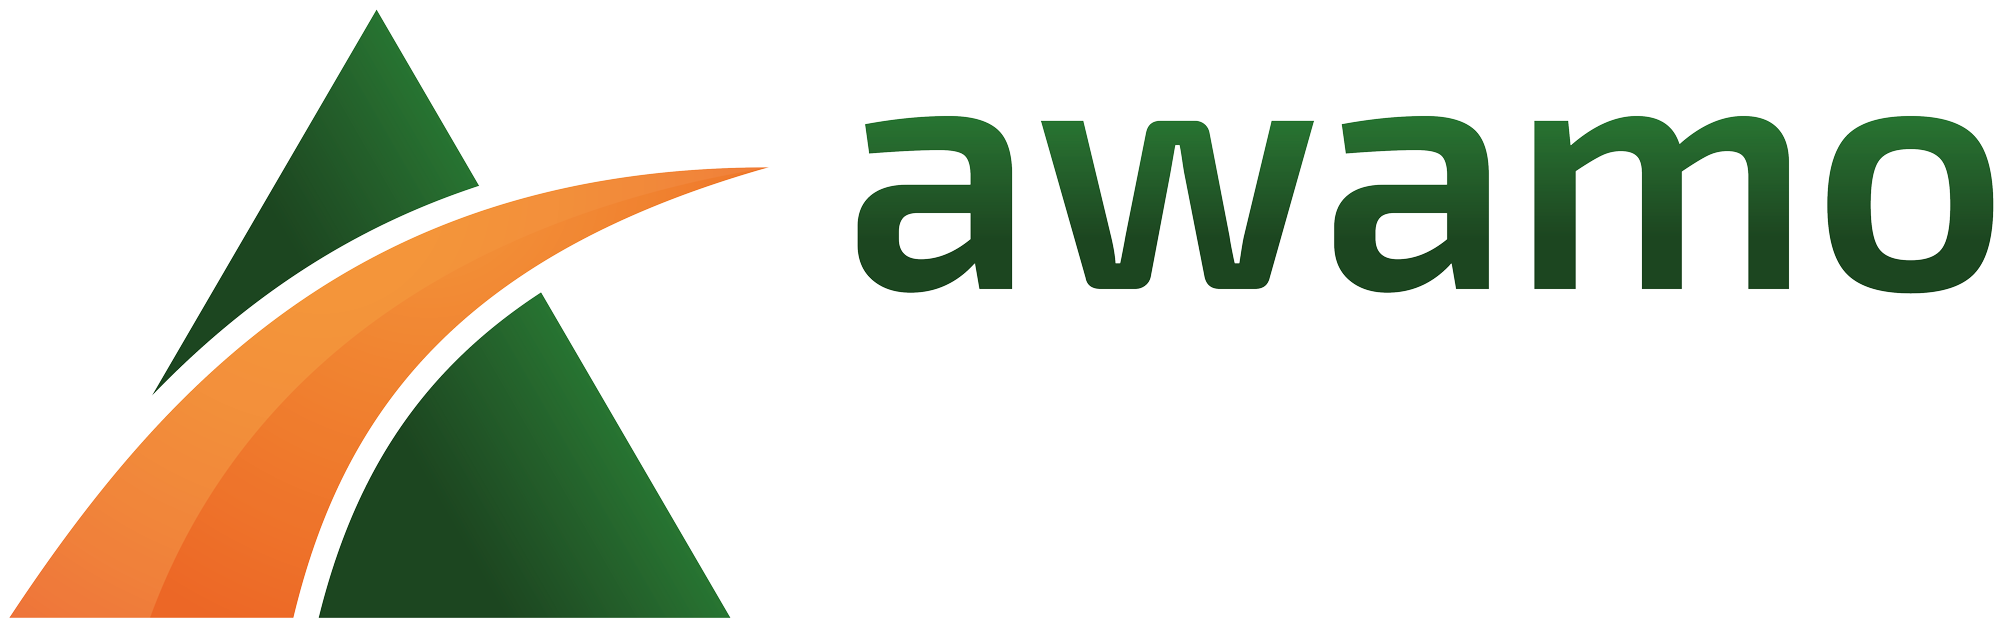 Awamo logo full color brand only v10